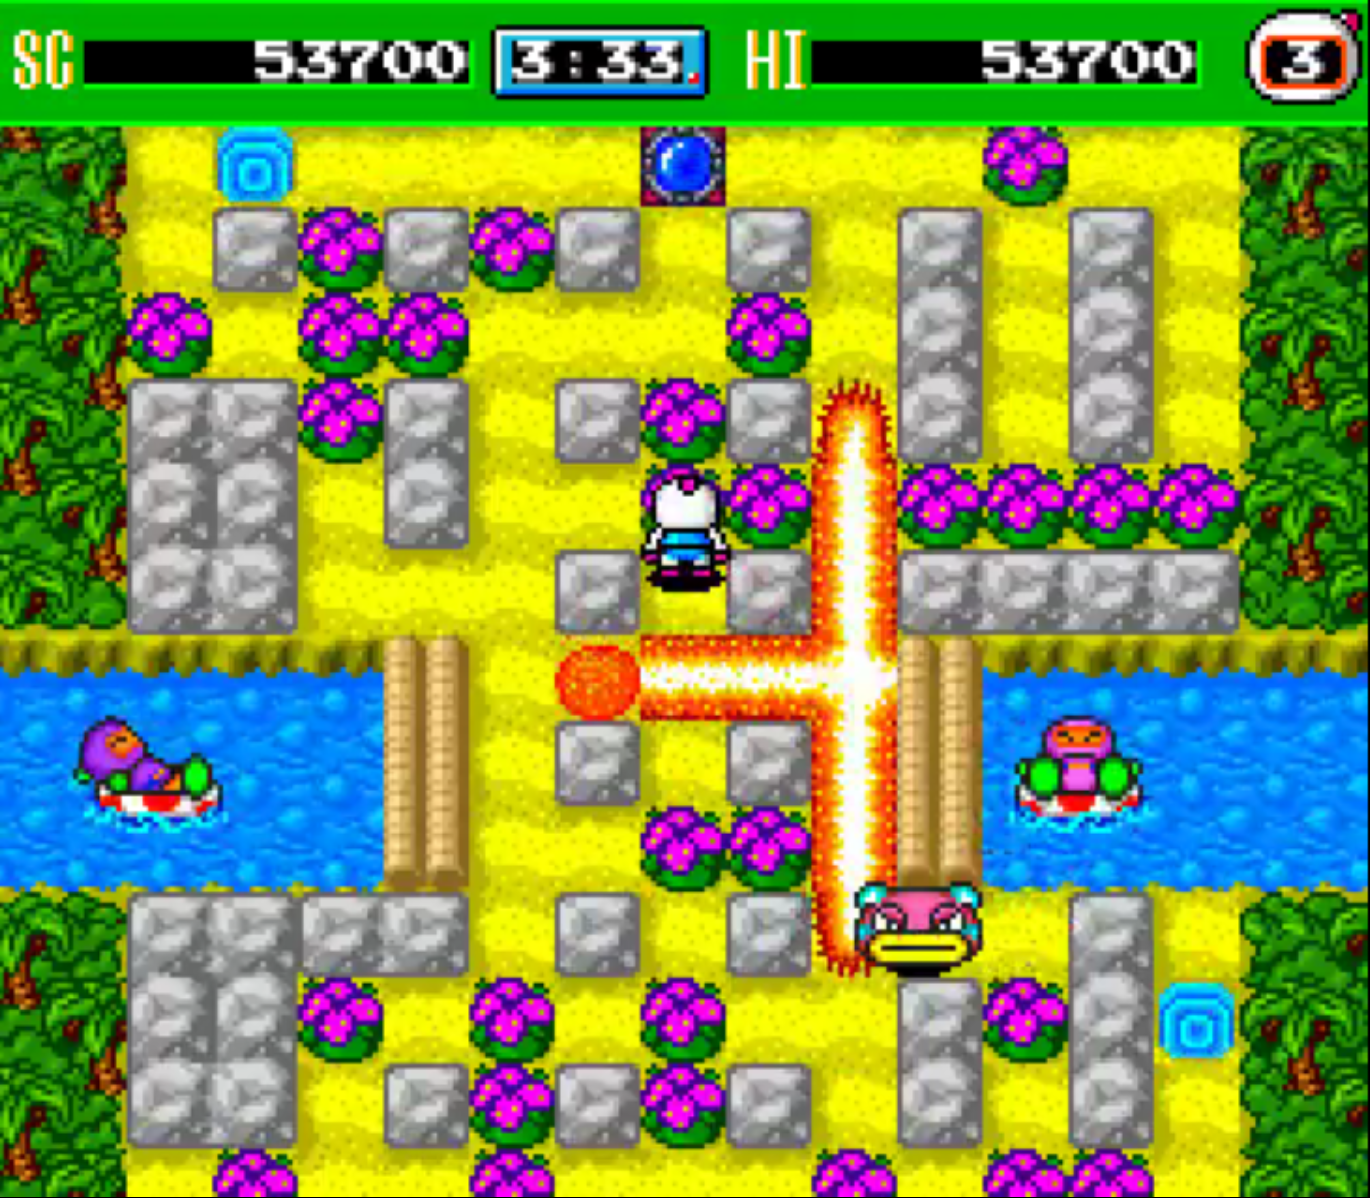 Retro Game Of The Week Bomberman 93 Pixlbit Bomb This Sounds Easy I Know But Little Things Can Make It Tricky If A Blast Hits Warp Enemies Will Spawn From And Move In Every Direction